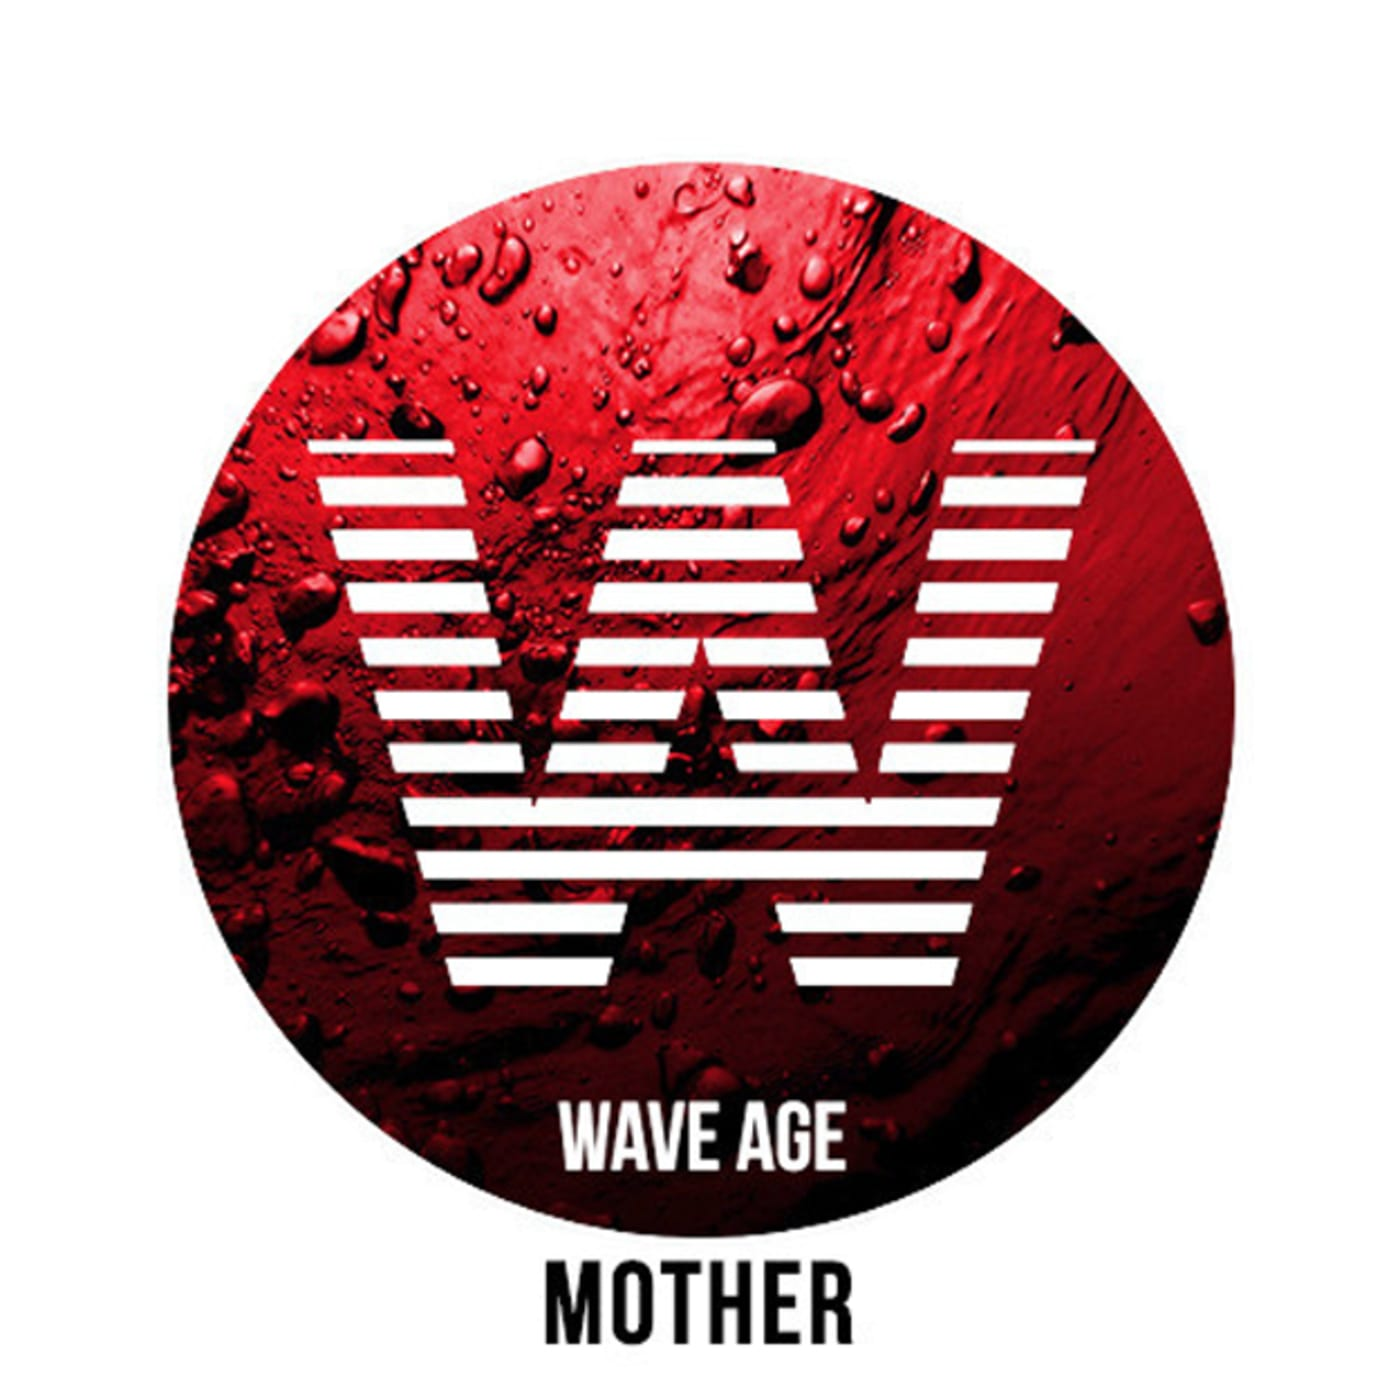 wave age mother